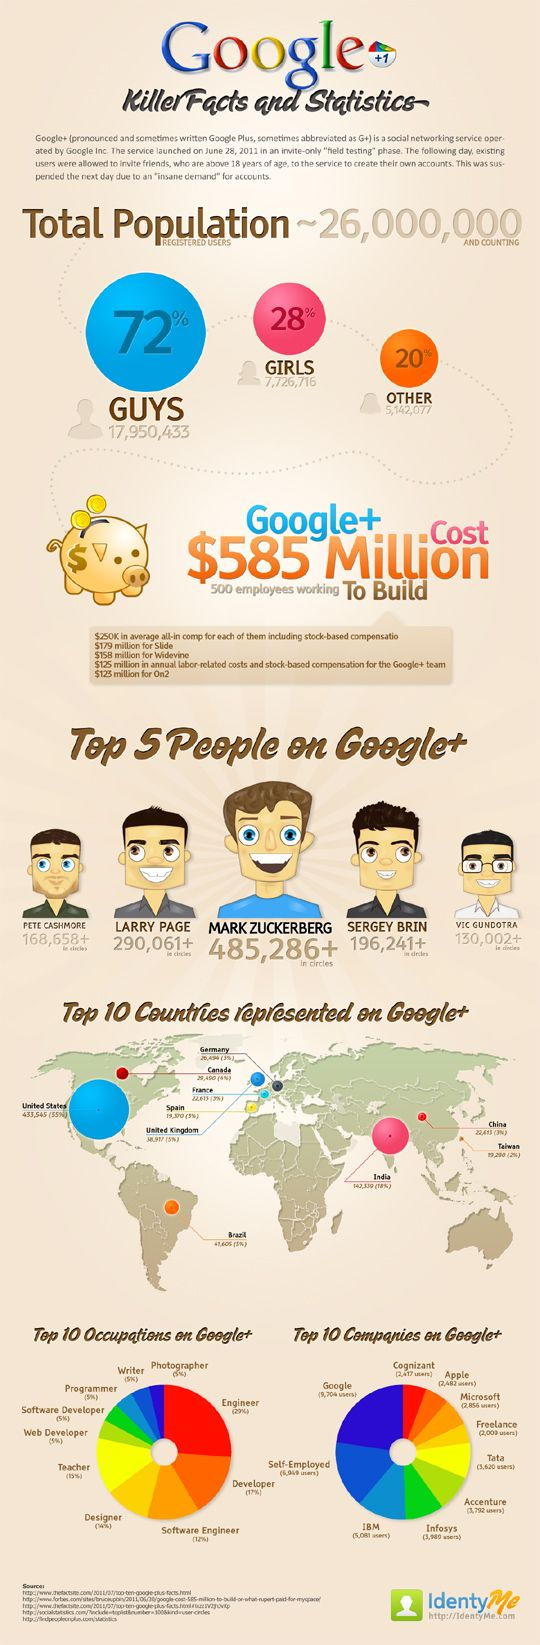 #Killer #Facts And #Statistics #About #Google #Plus [ #Google+ ] [ #Infographic ]